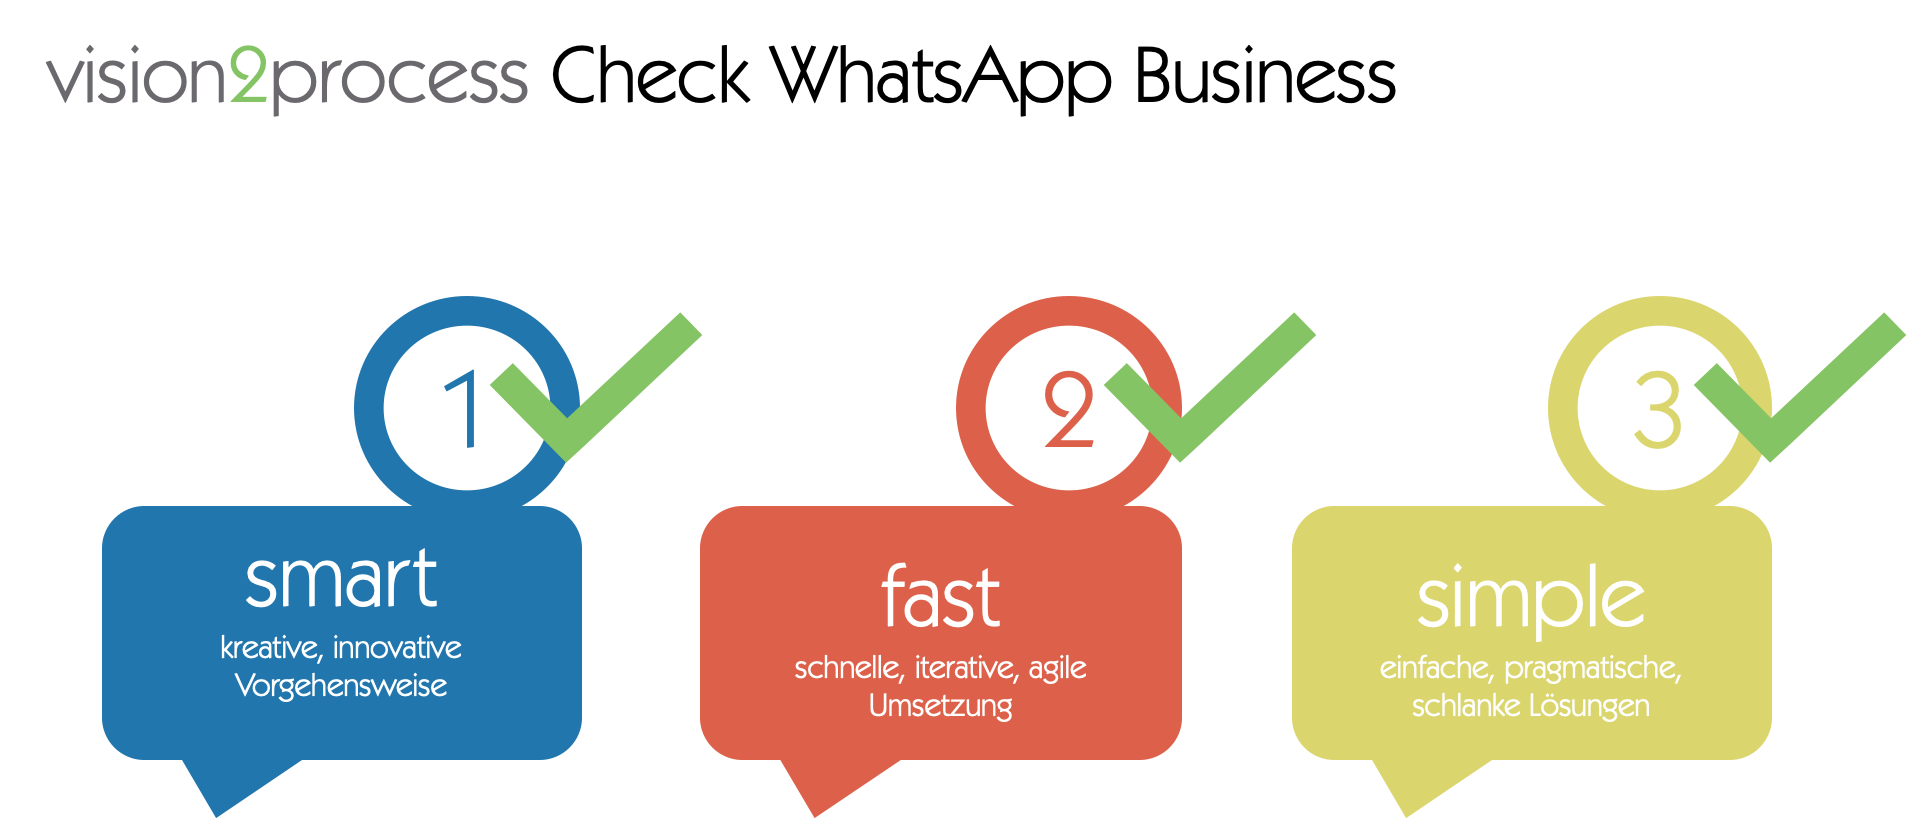 WhatsApp Business vision2process Check